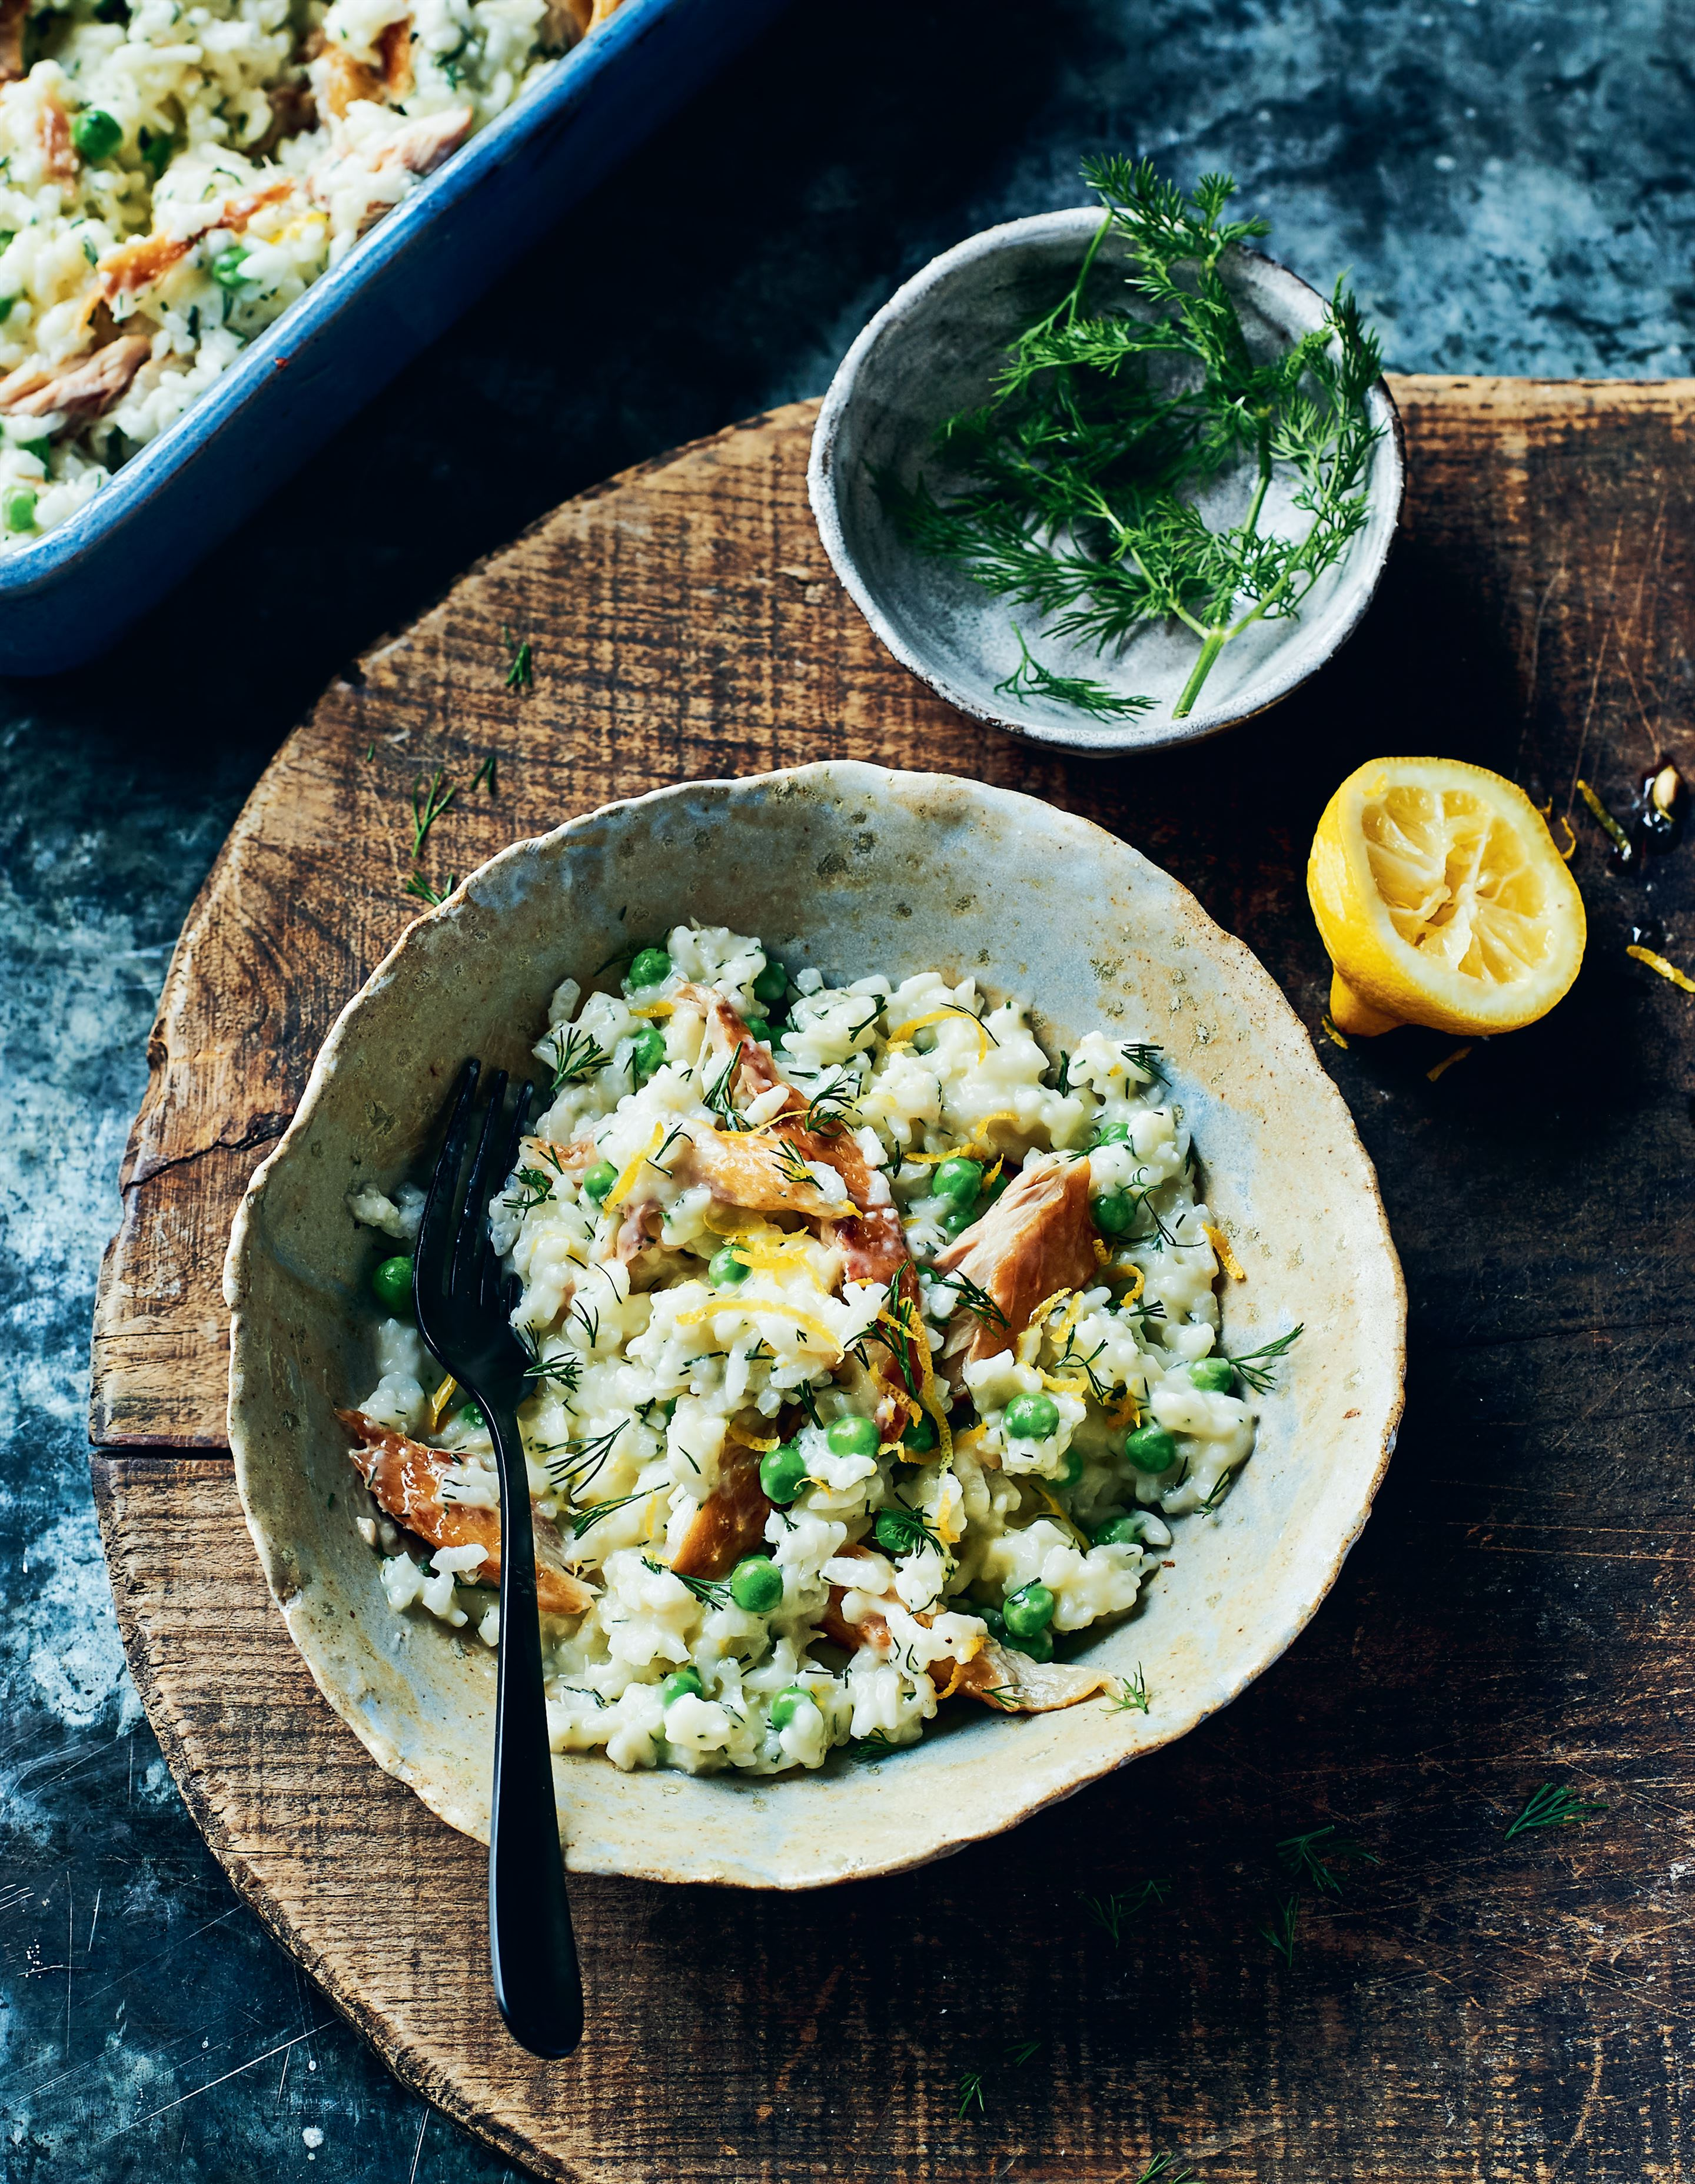 Risotto with smoked mackerel, peas and lemon